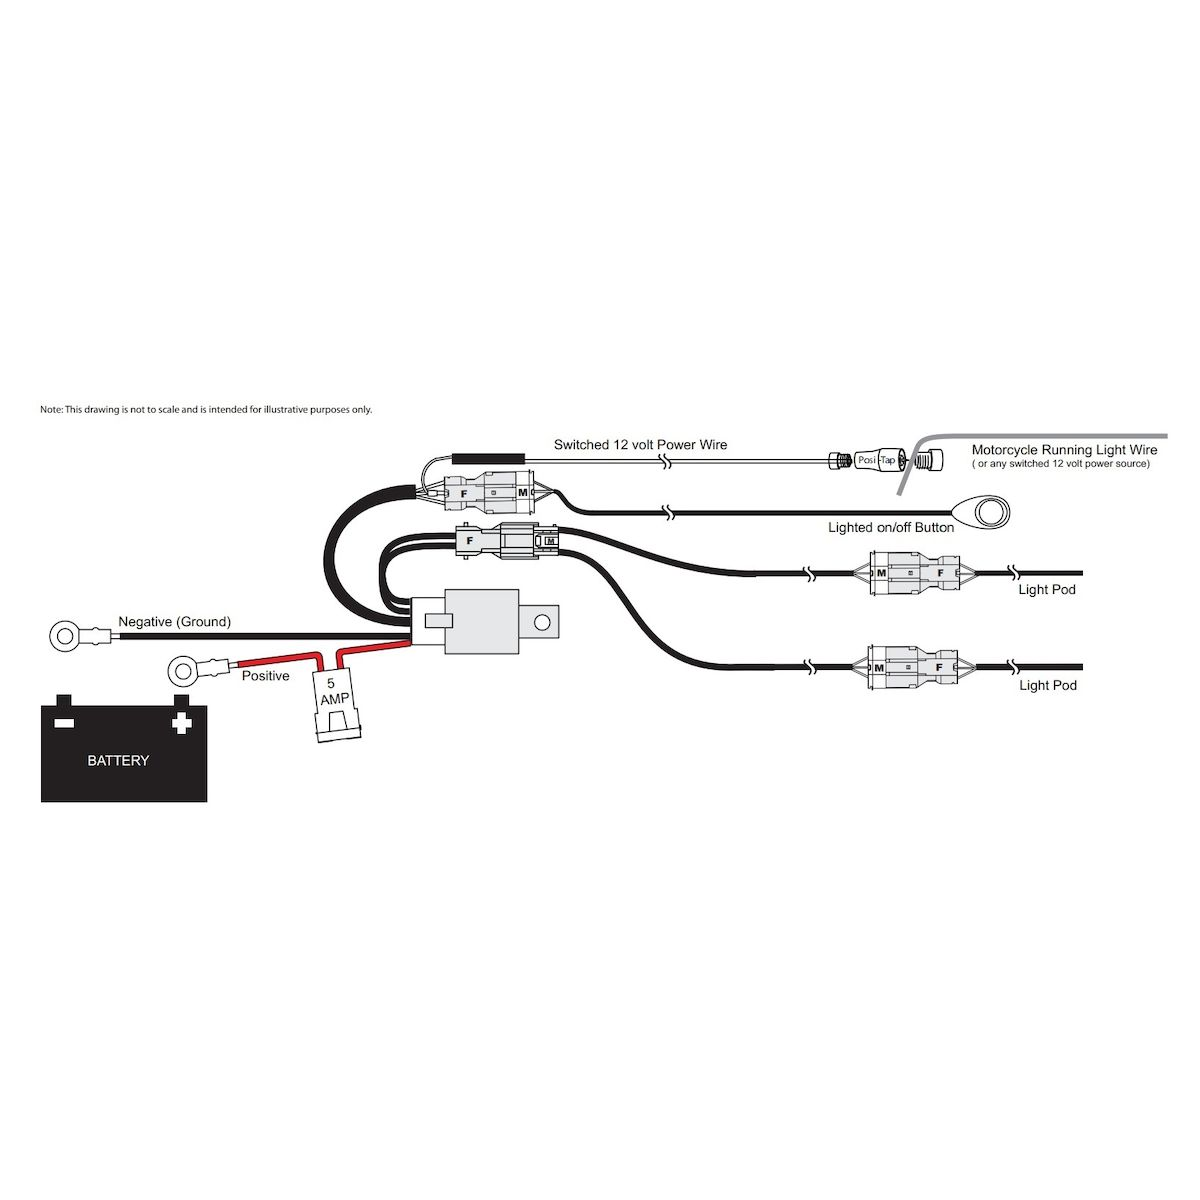 Help On Denali D1 Wiring Harness